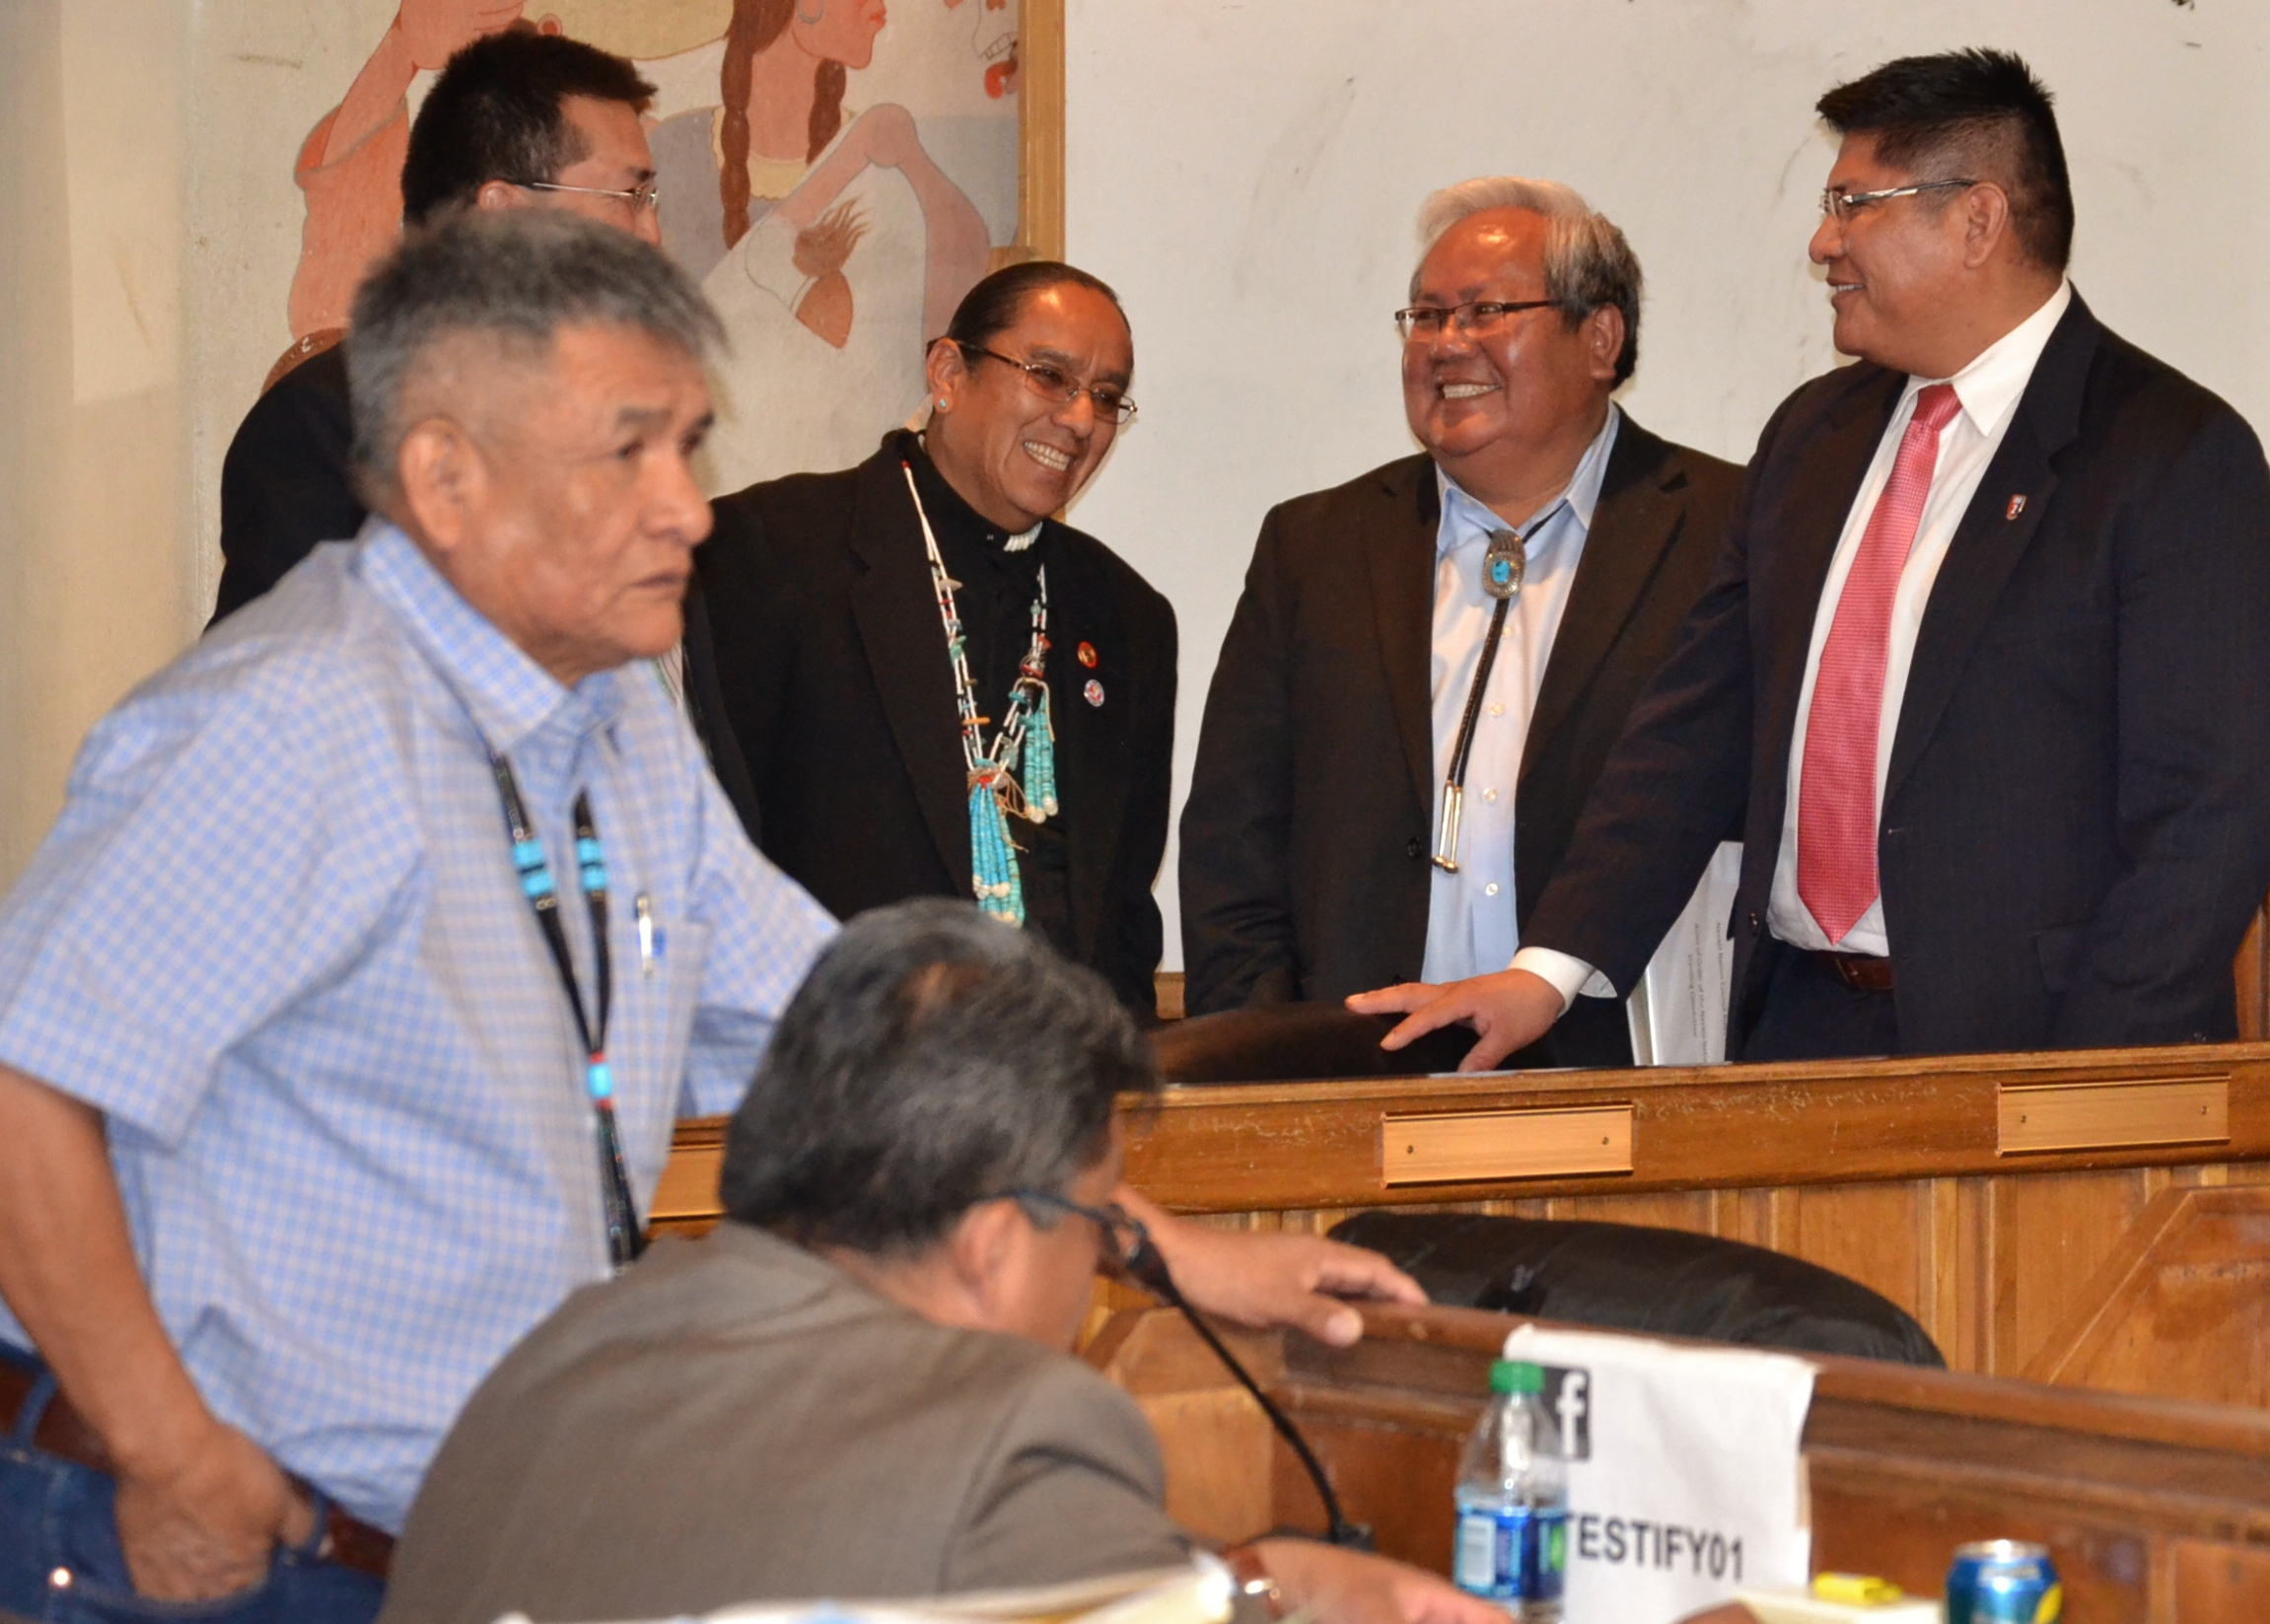 (L-) Navajo Council Delegate George Apachito stands by Delegate Edmund Yazzie during a recess in the Council's Winter session on Jan. 28, 2014 . In the background is Chief of Staff Jarvis Williams, Staff Assistant Darrell Tso Sr., Speaker Johnny Naize and Staff Assistant Ansley Curley. Photo by Marley Shebala